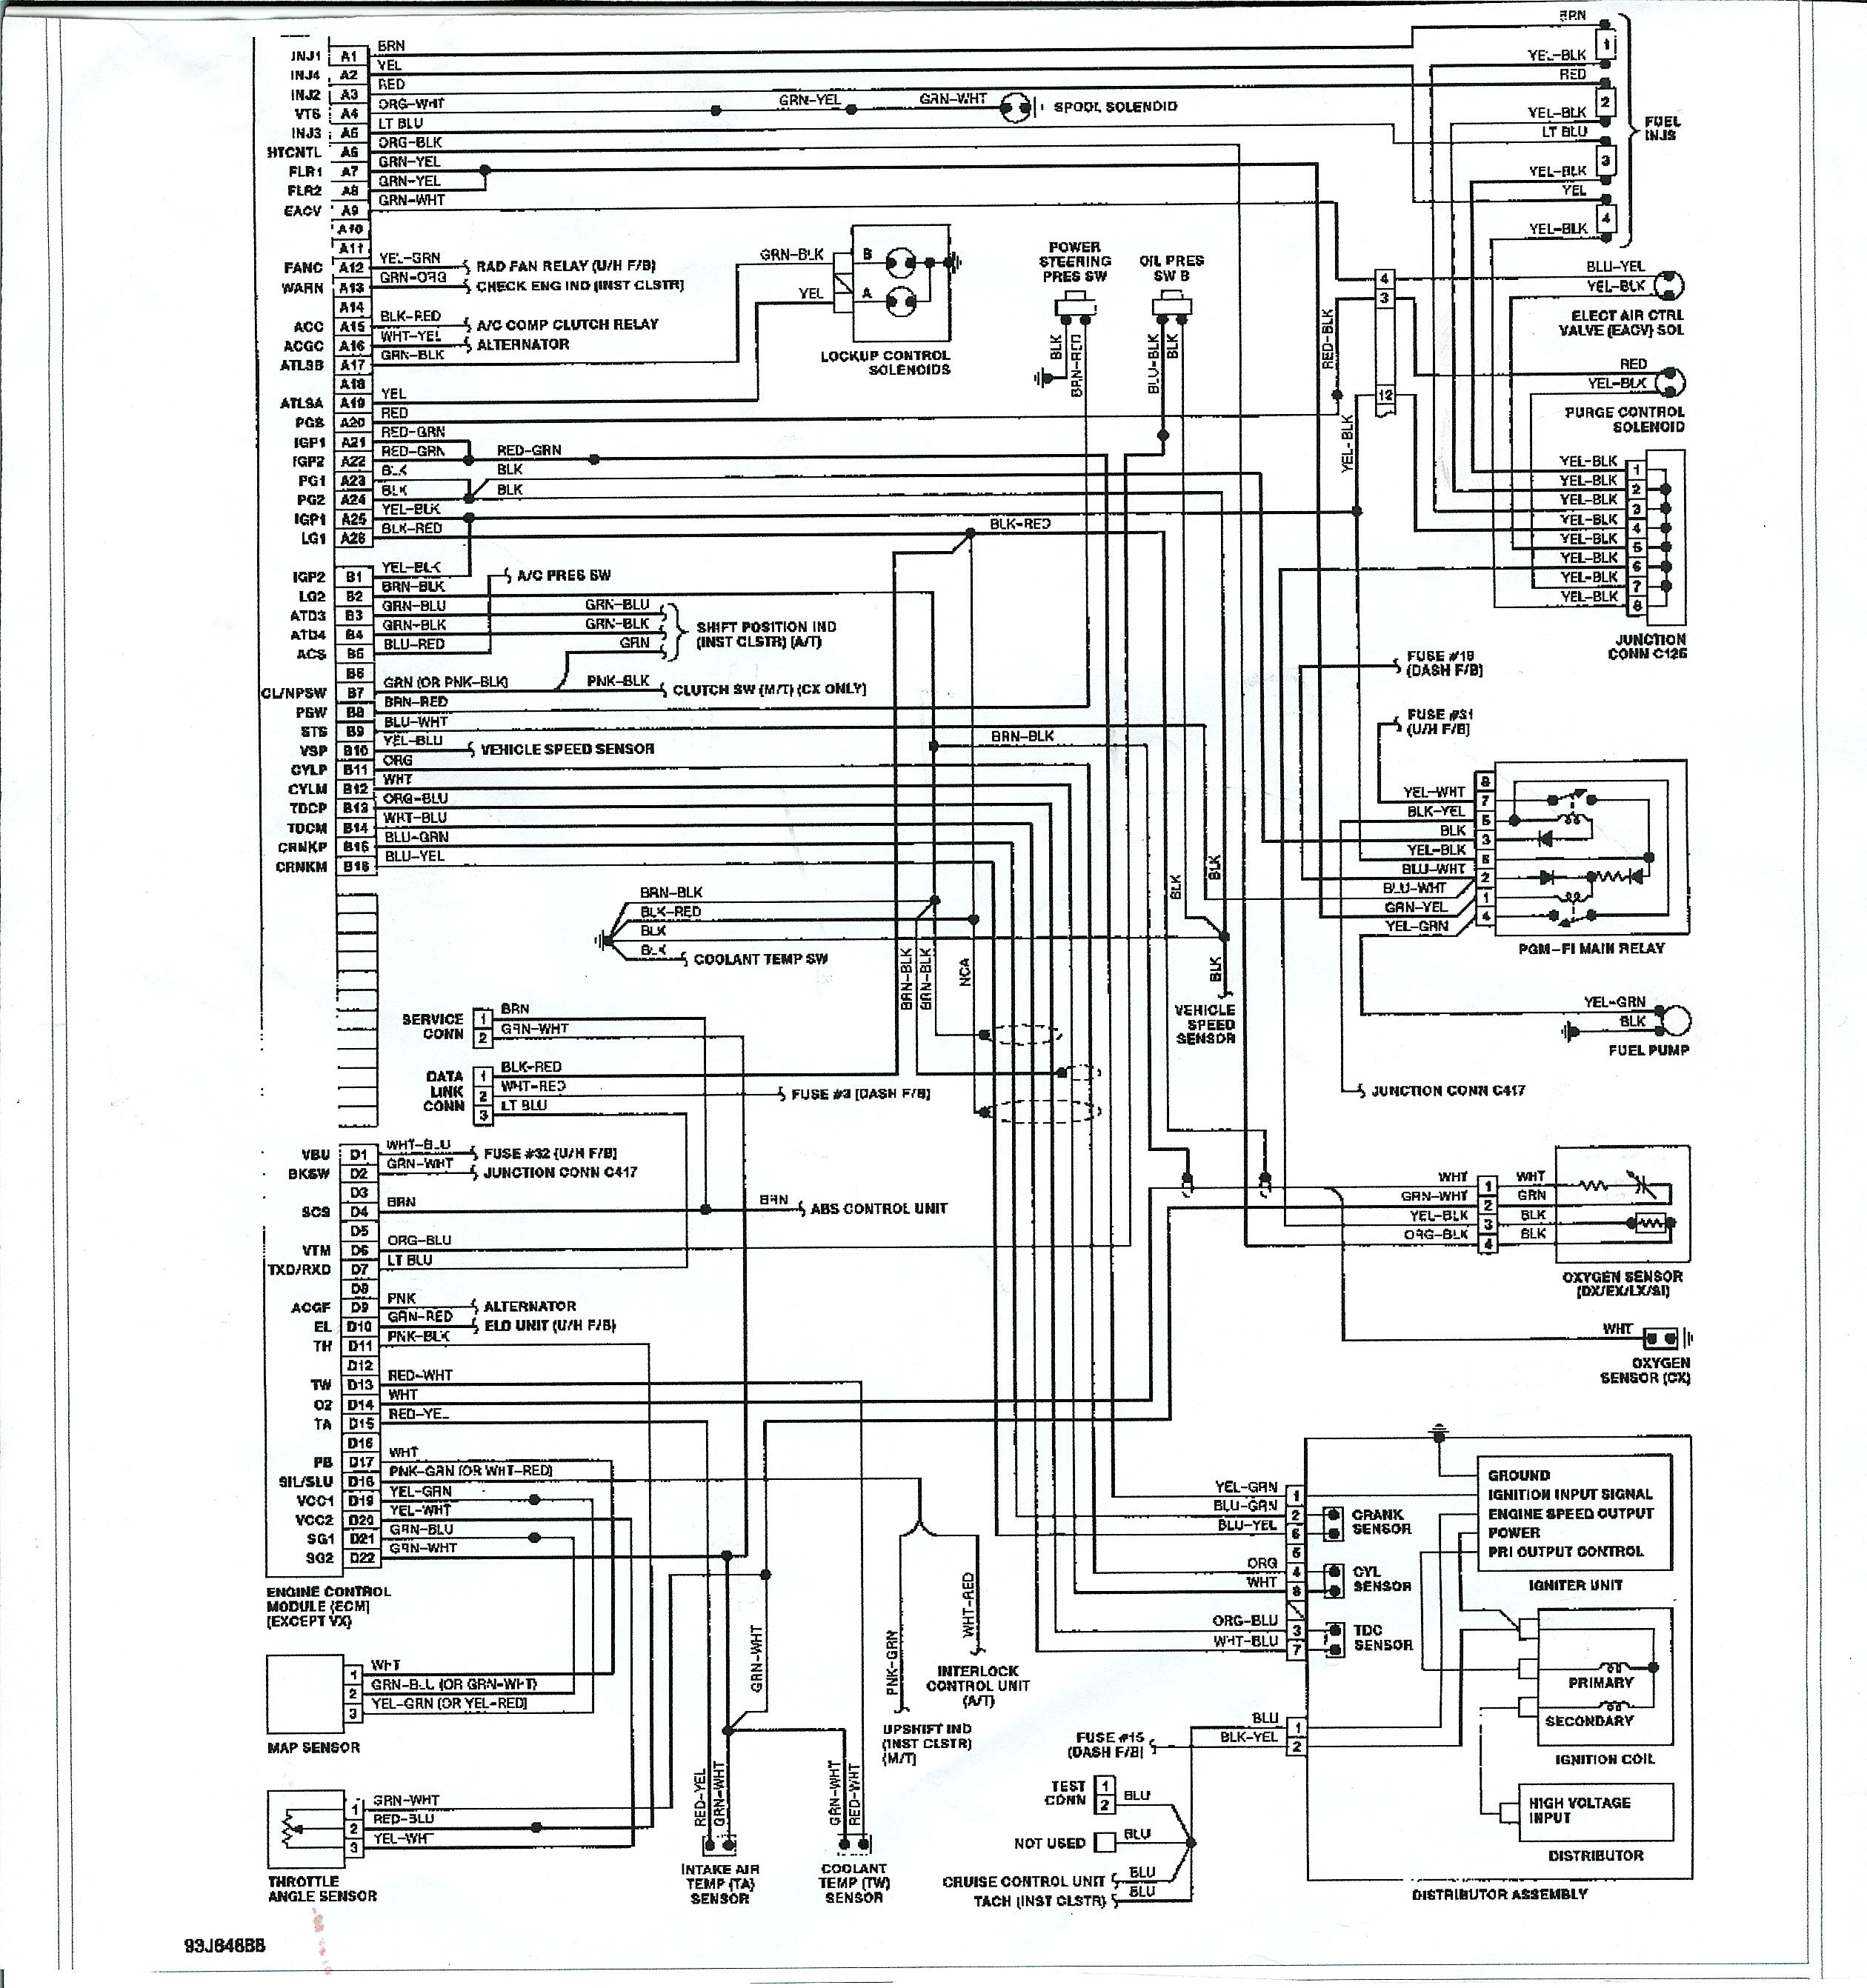 Honda Wiring Diagrams Civic. Honda. Free Wiring Diagrams